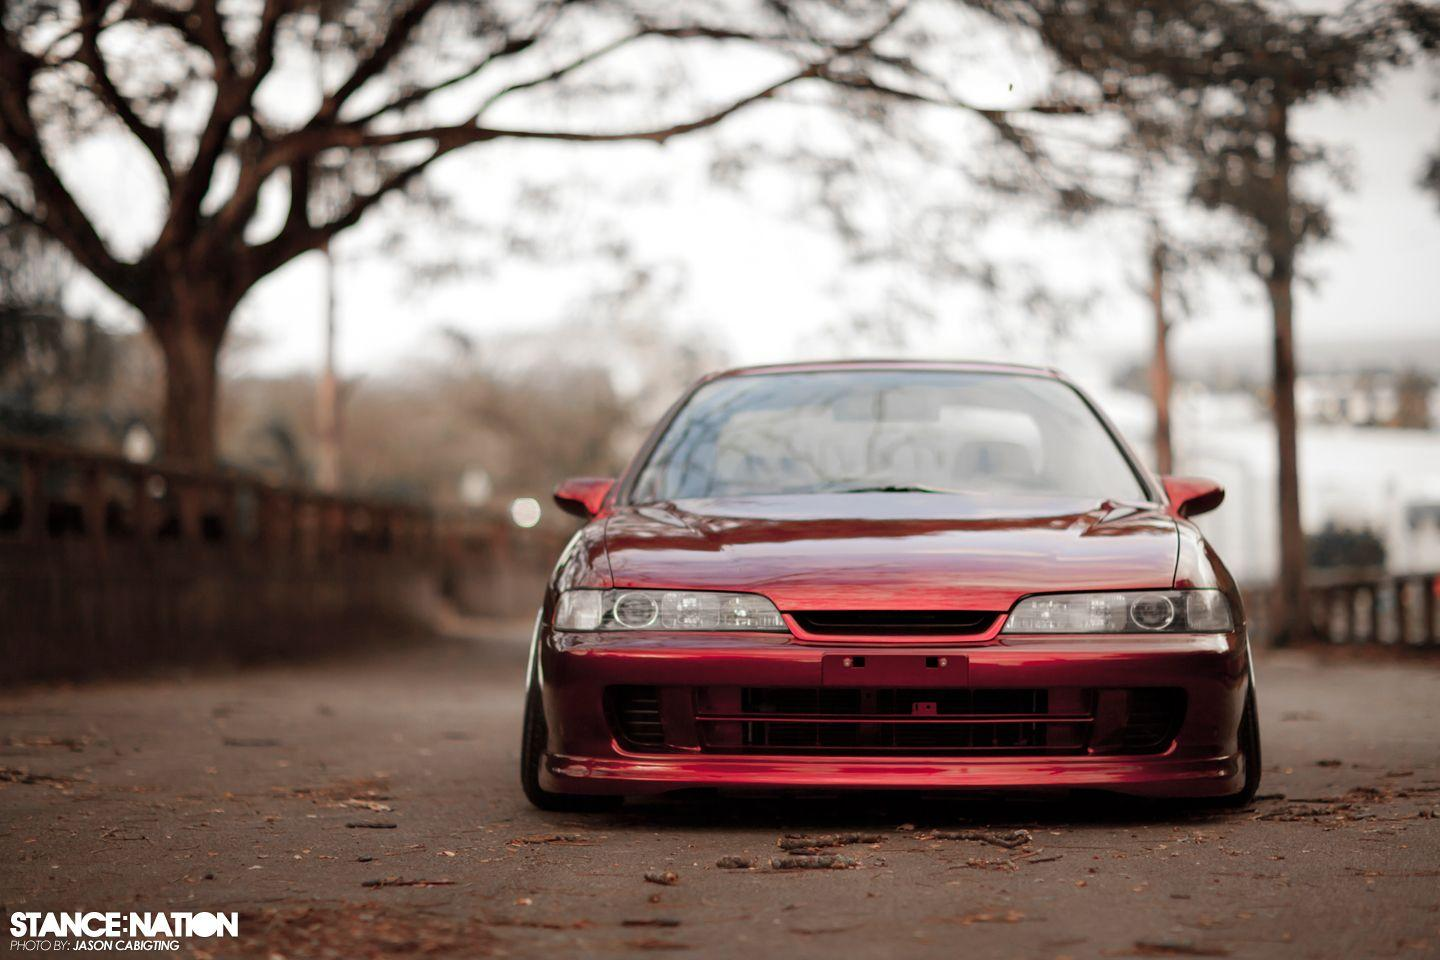 Integra Type R on the low side.